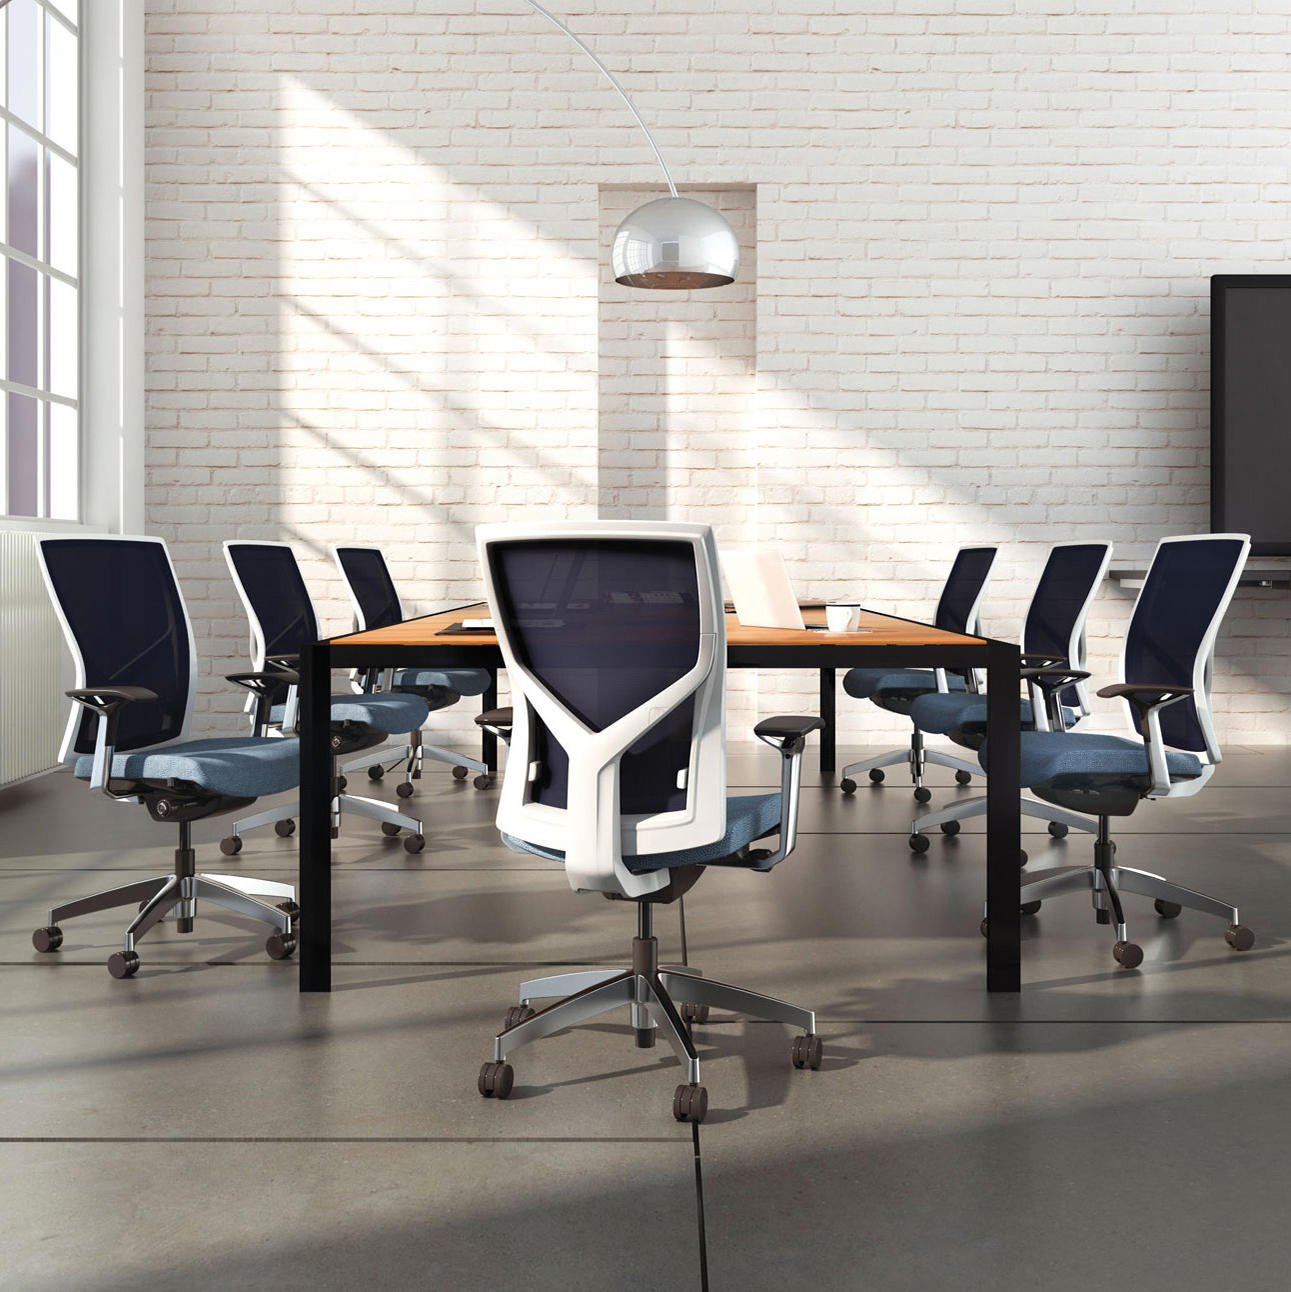 Torsa Sillas De Oficina De Sitonit Seating Architonic